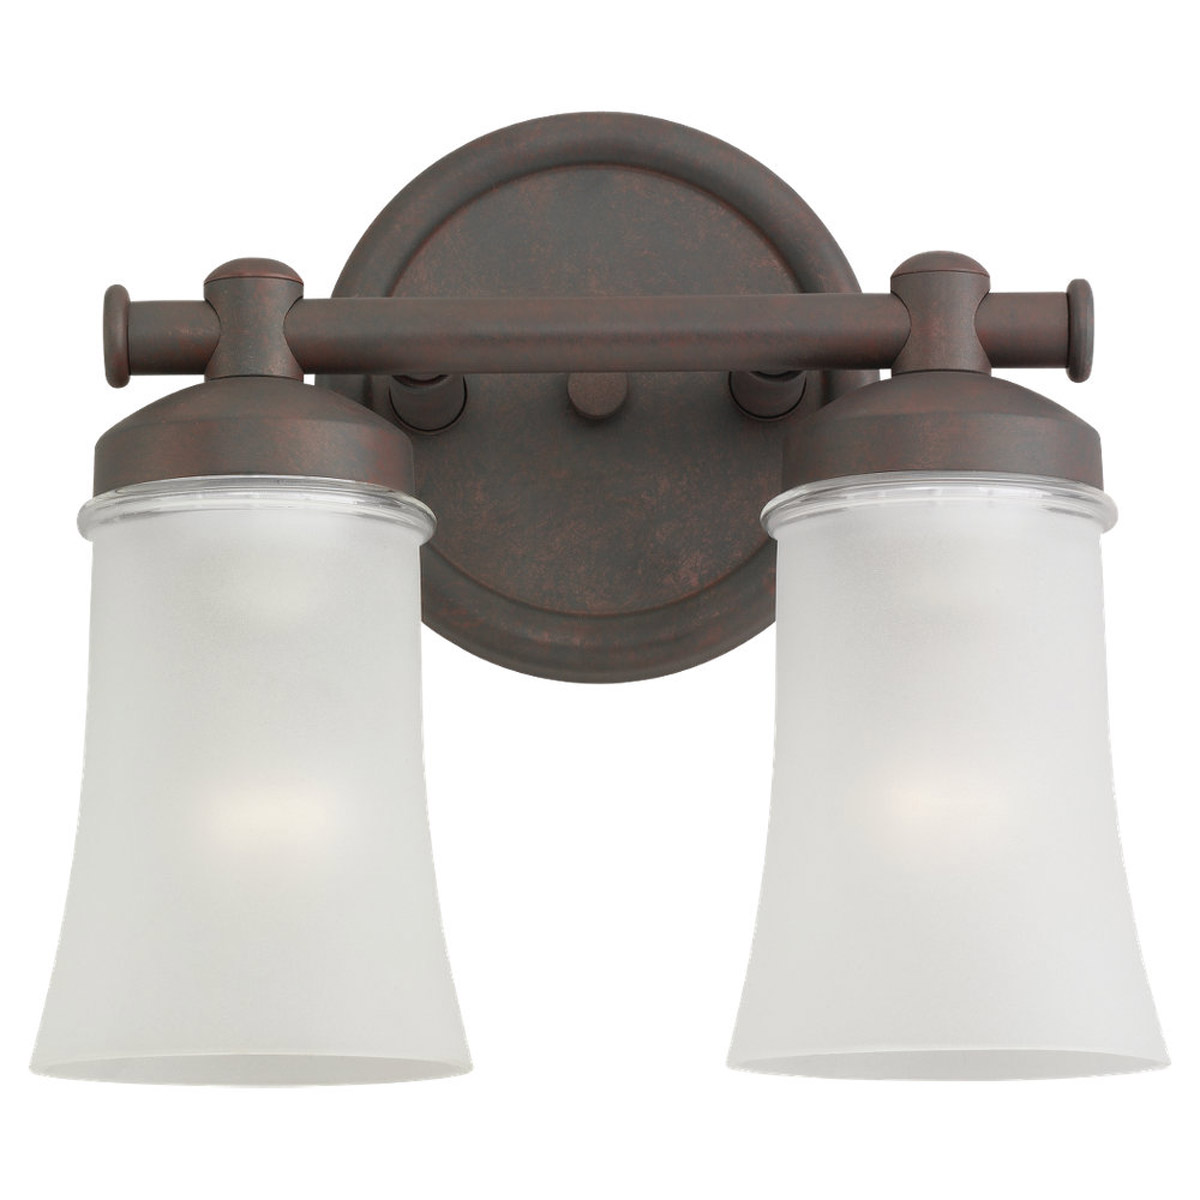 Sea Gull Lighting Newport 2 Light Wall / Bath / Vanity in Misted Bronze 44483-814 photo